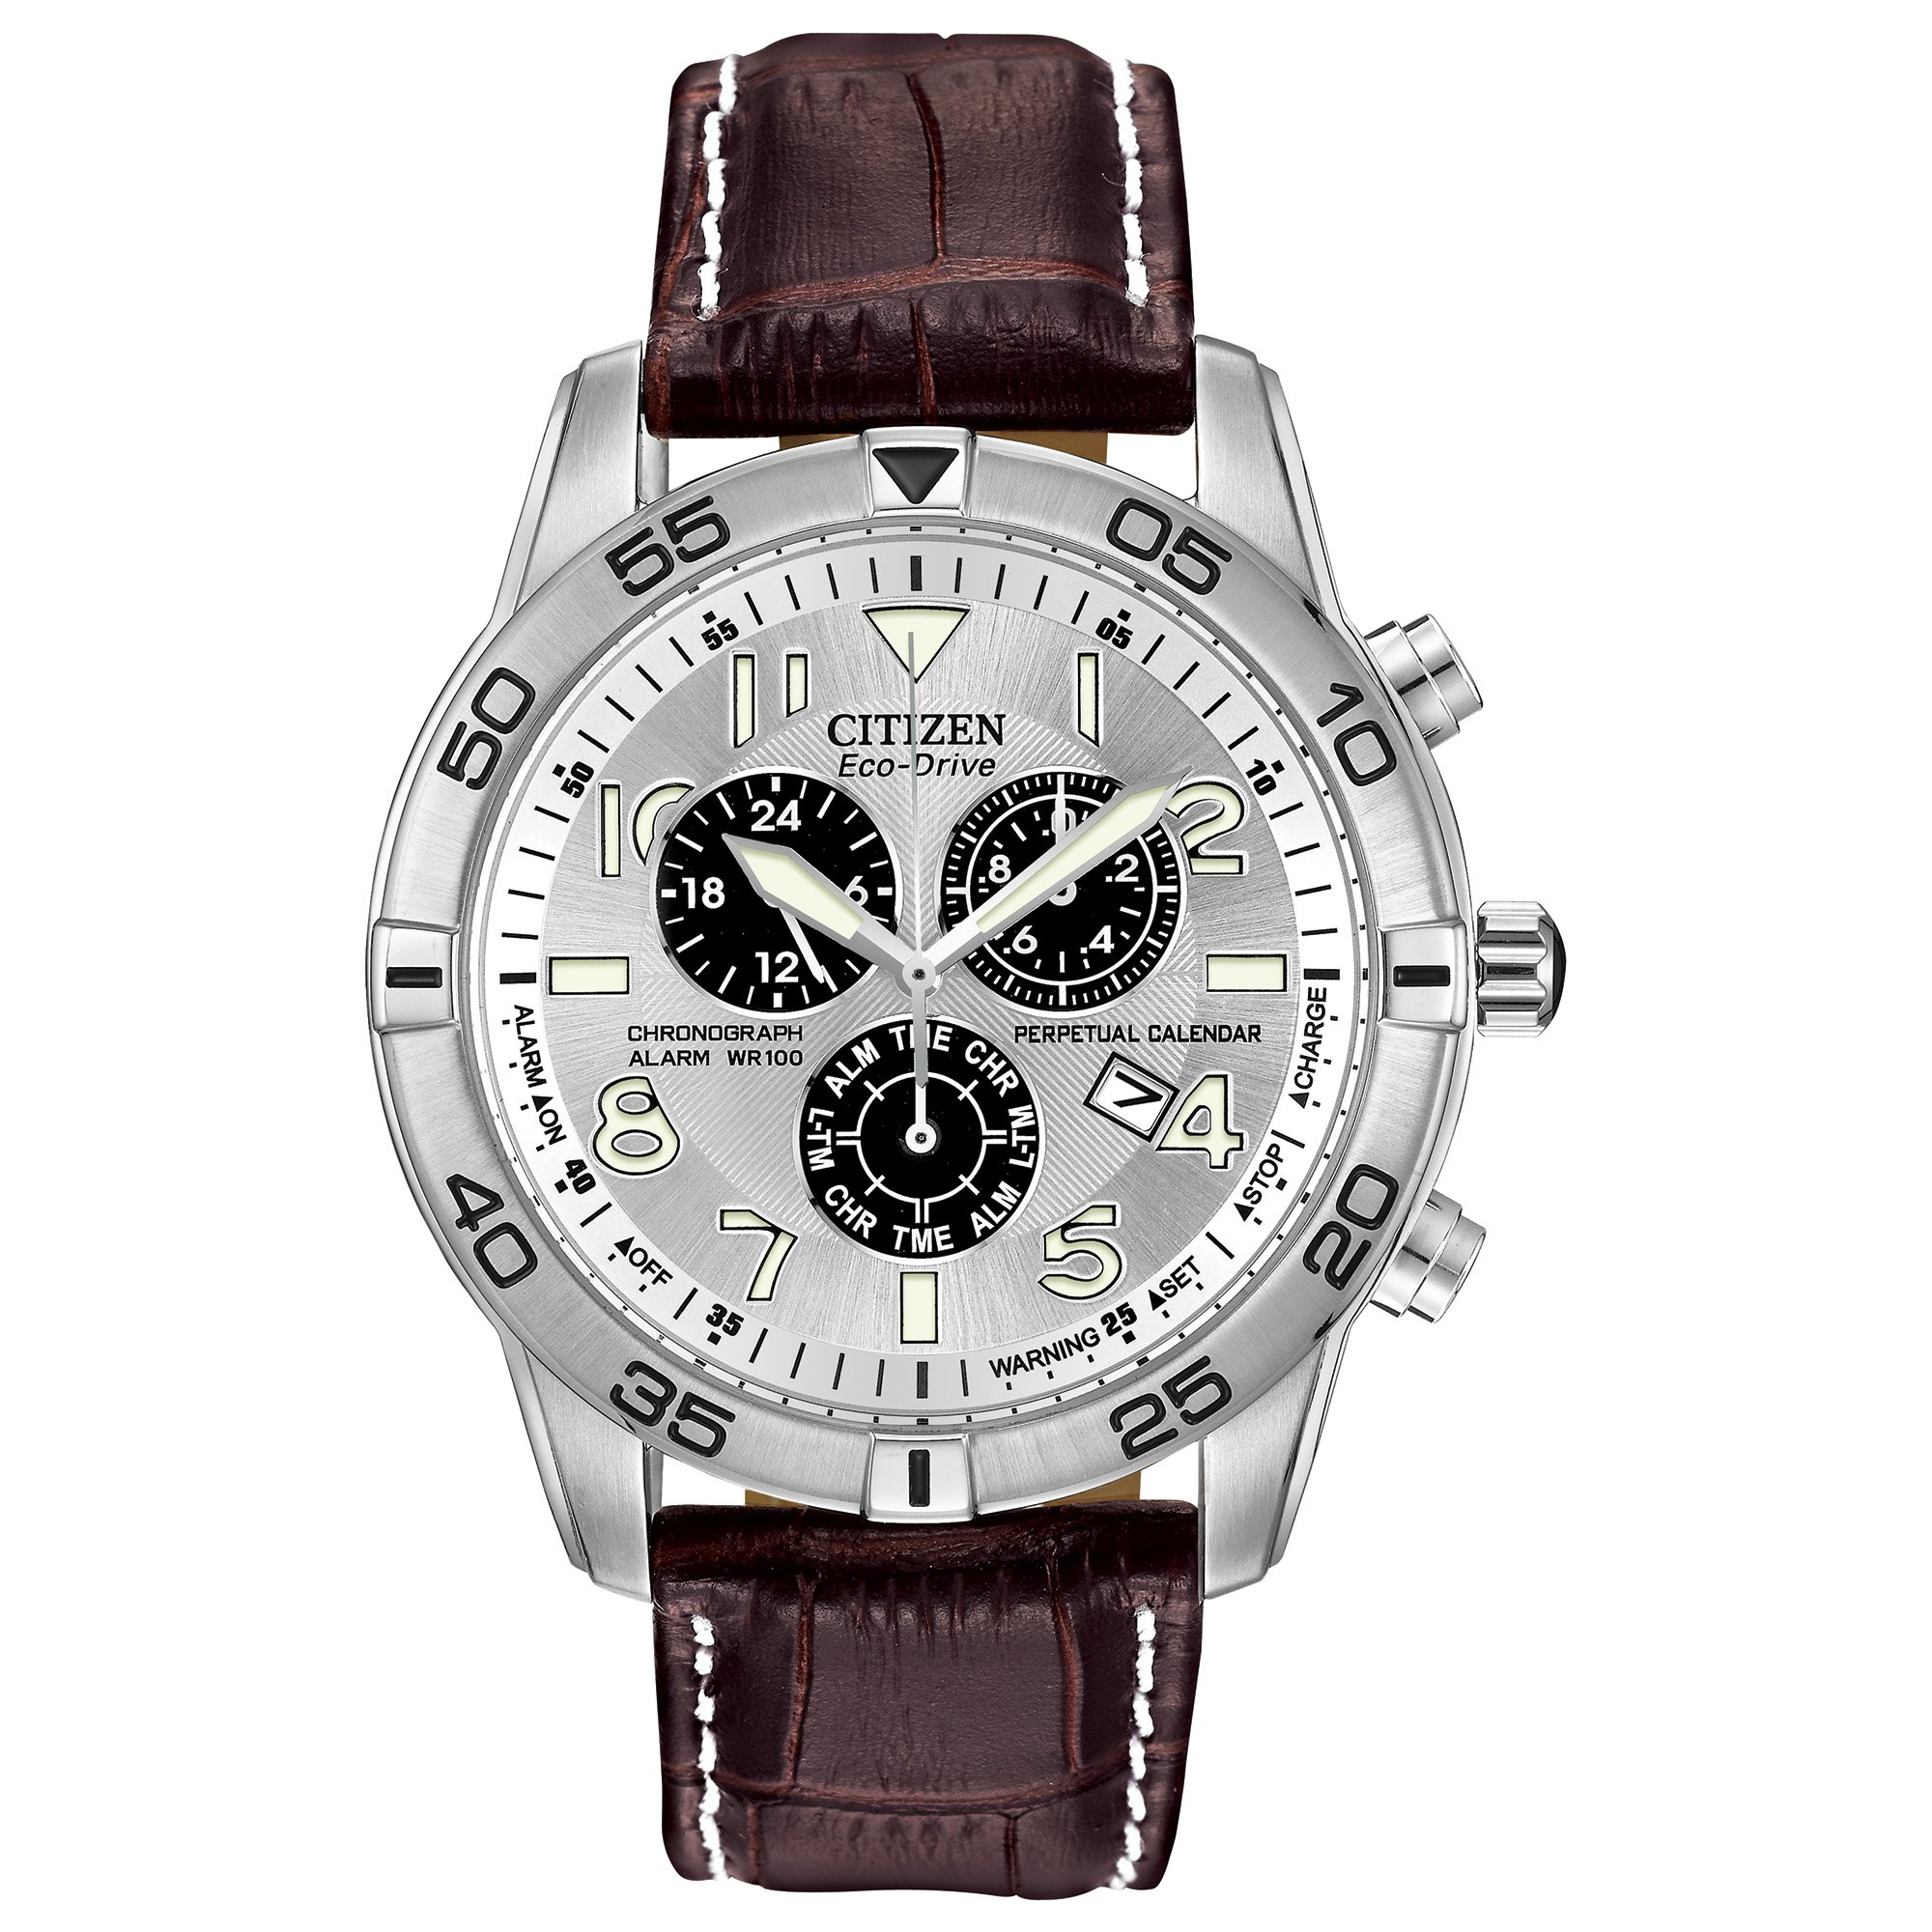 Citizen Men's Eco-Drive Chronograph Watch with Perpetual Calendar and Date, BL5470-06A by Citizen